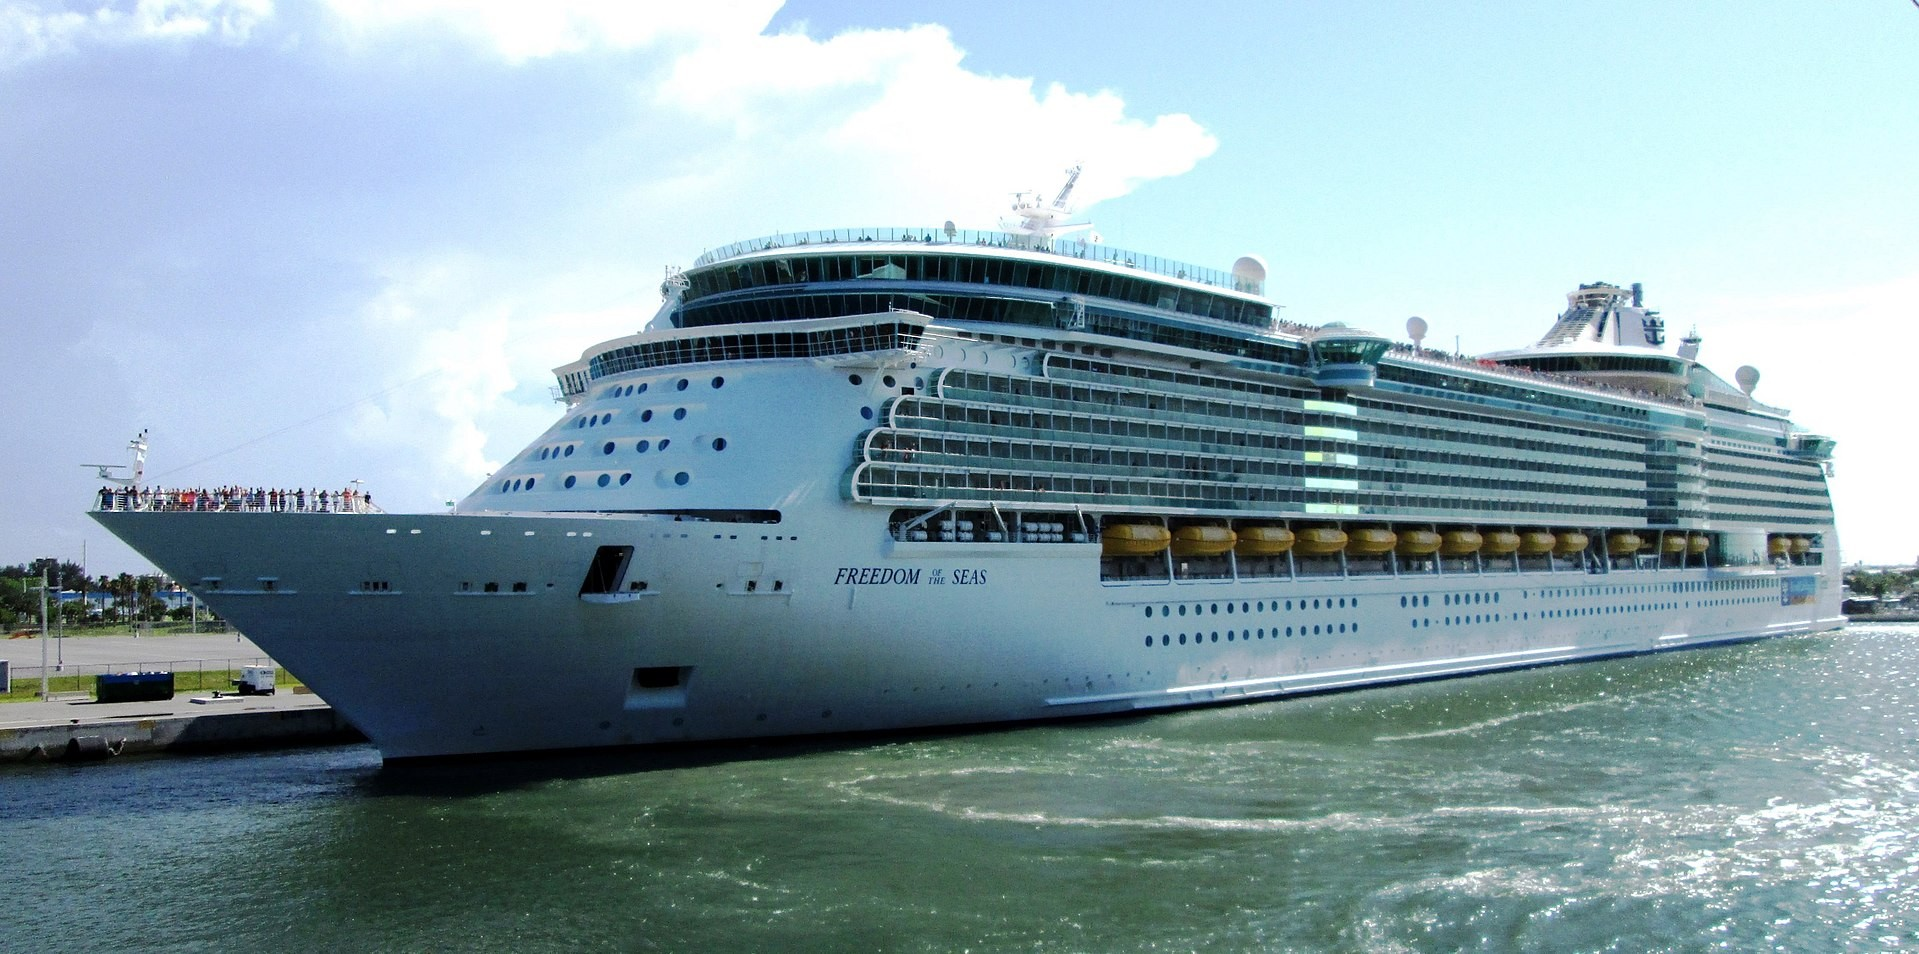 O navio Freeedom of The Seas (Foto: Creative Commons)